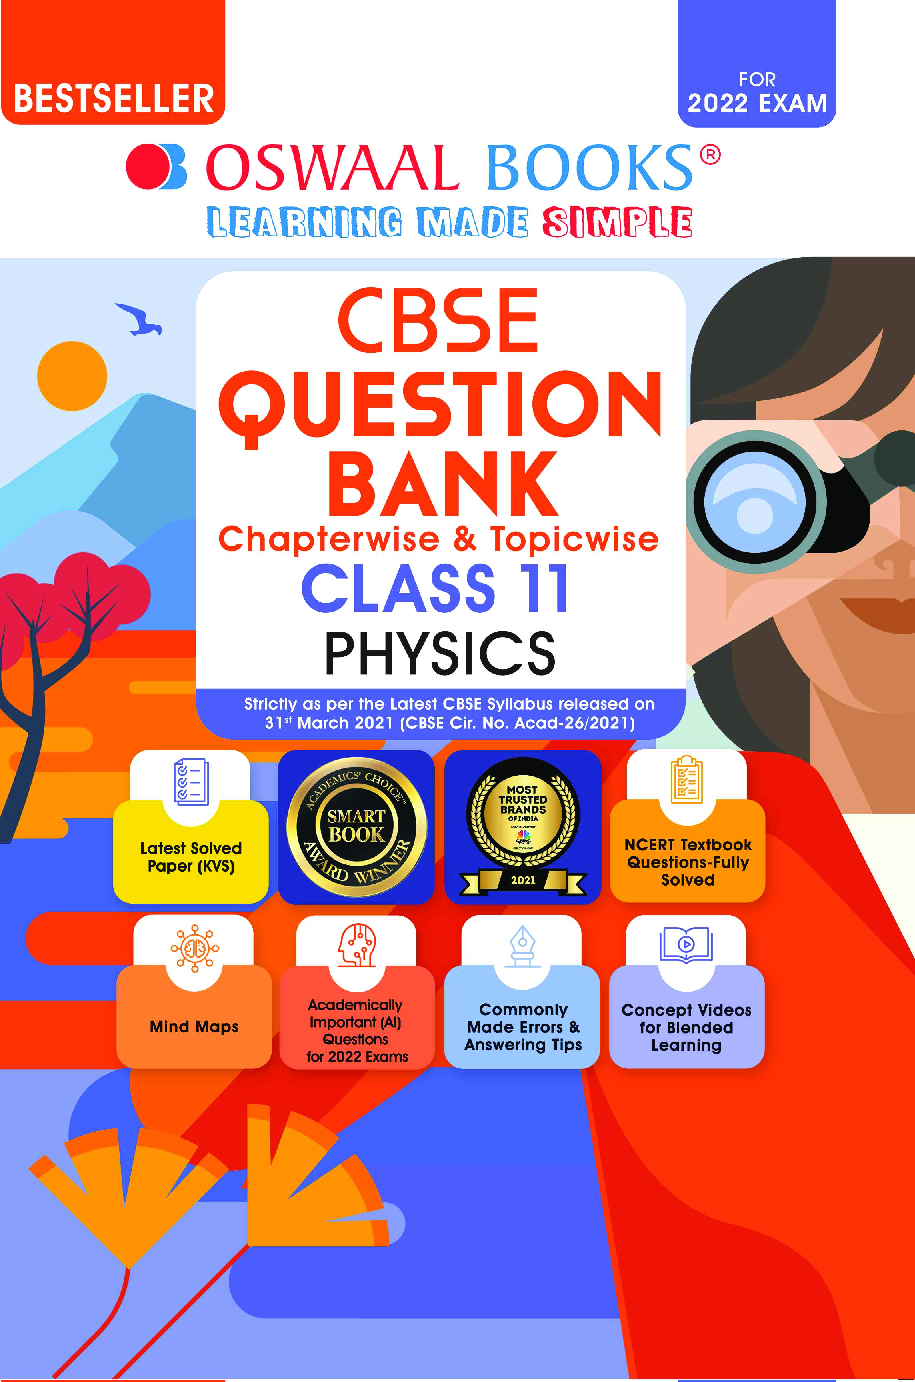 Oswaal CBSE Question Bank Class 11 Physics Book Chapterwise & Topicwise (For 2022 Exam) - Page 1